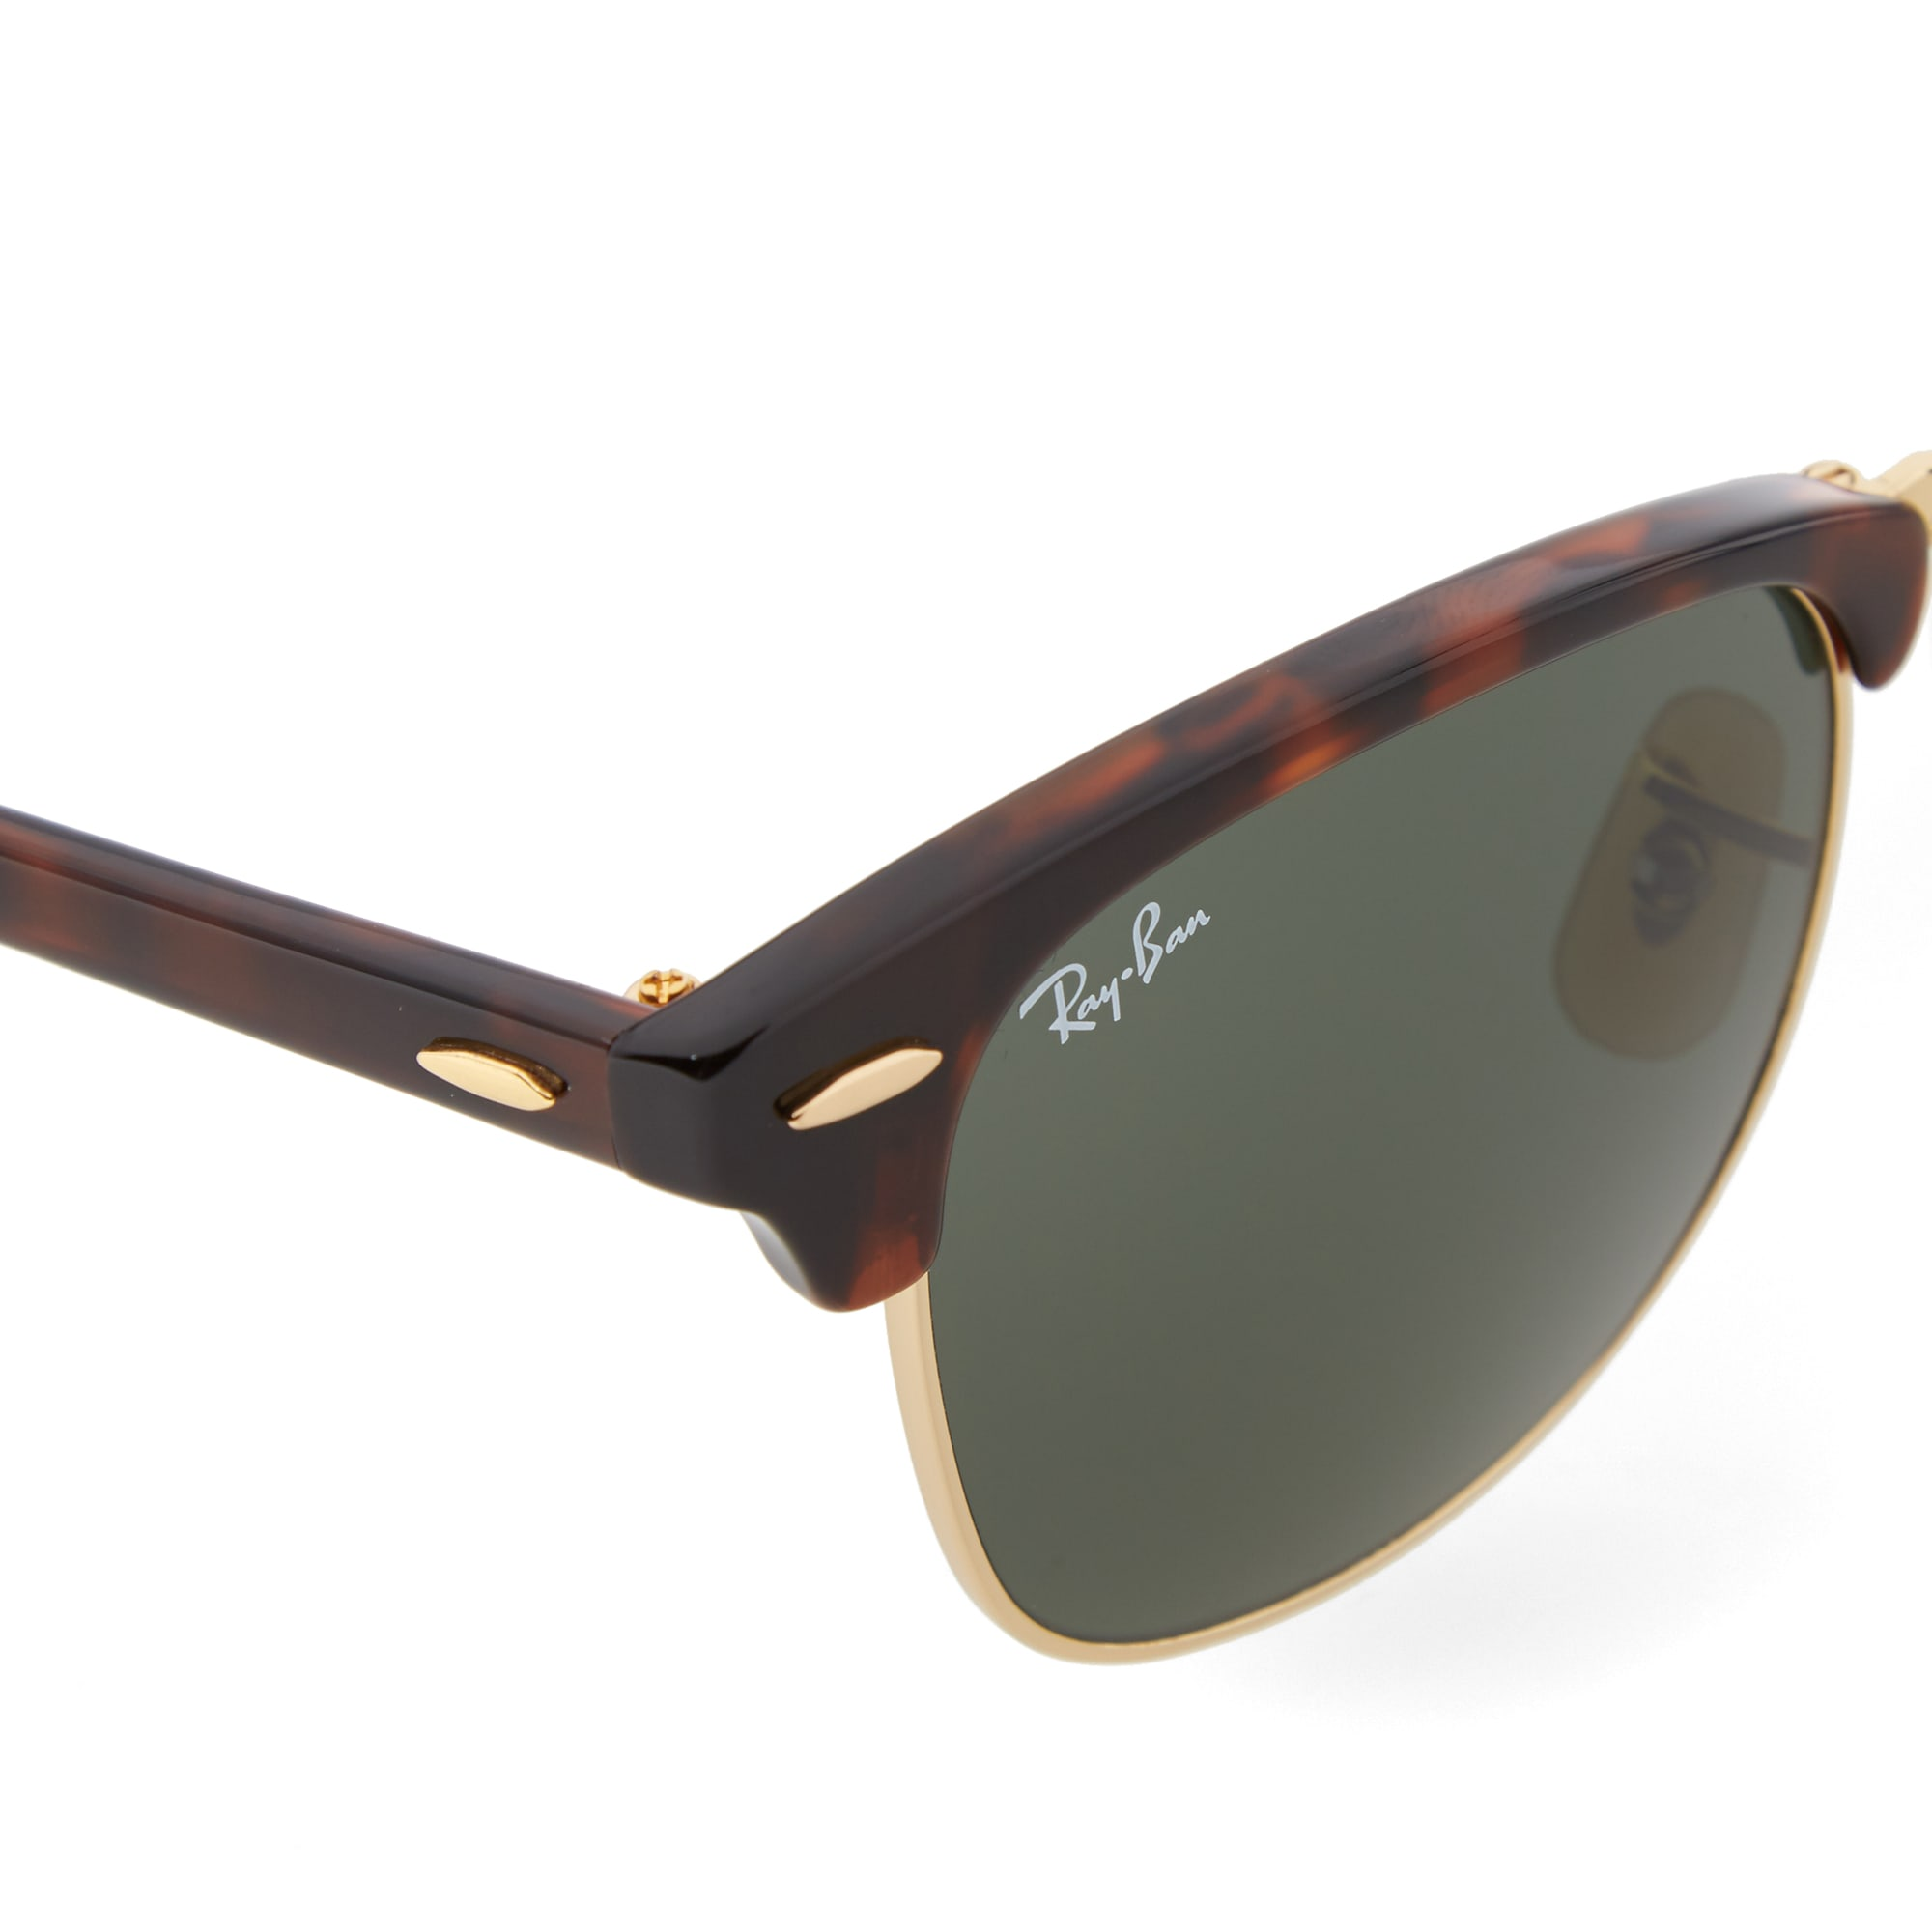 Ray Ban Glasses Frames Ireland : Ray Ban Clubmaster Folding Sunglasses (Red Havana & Green)